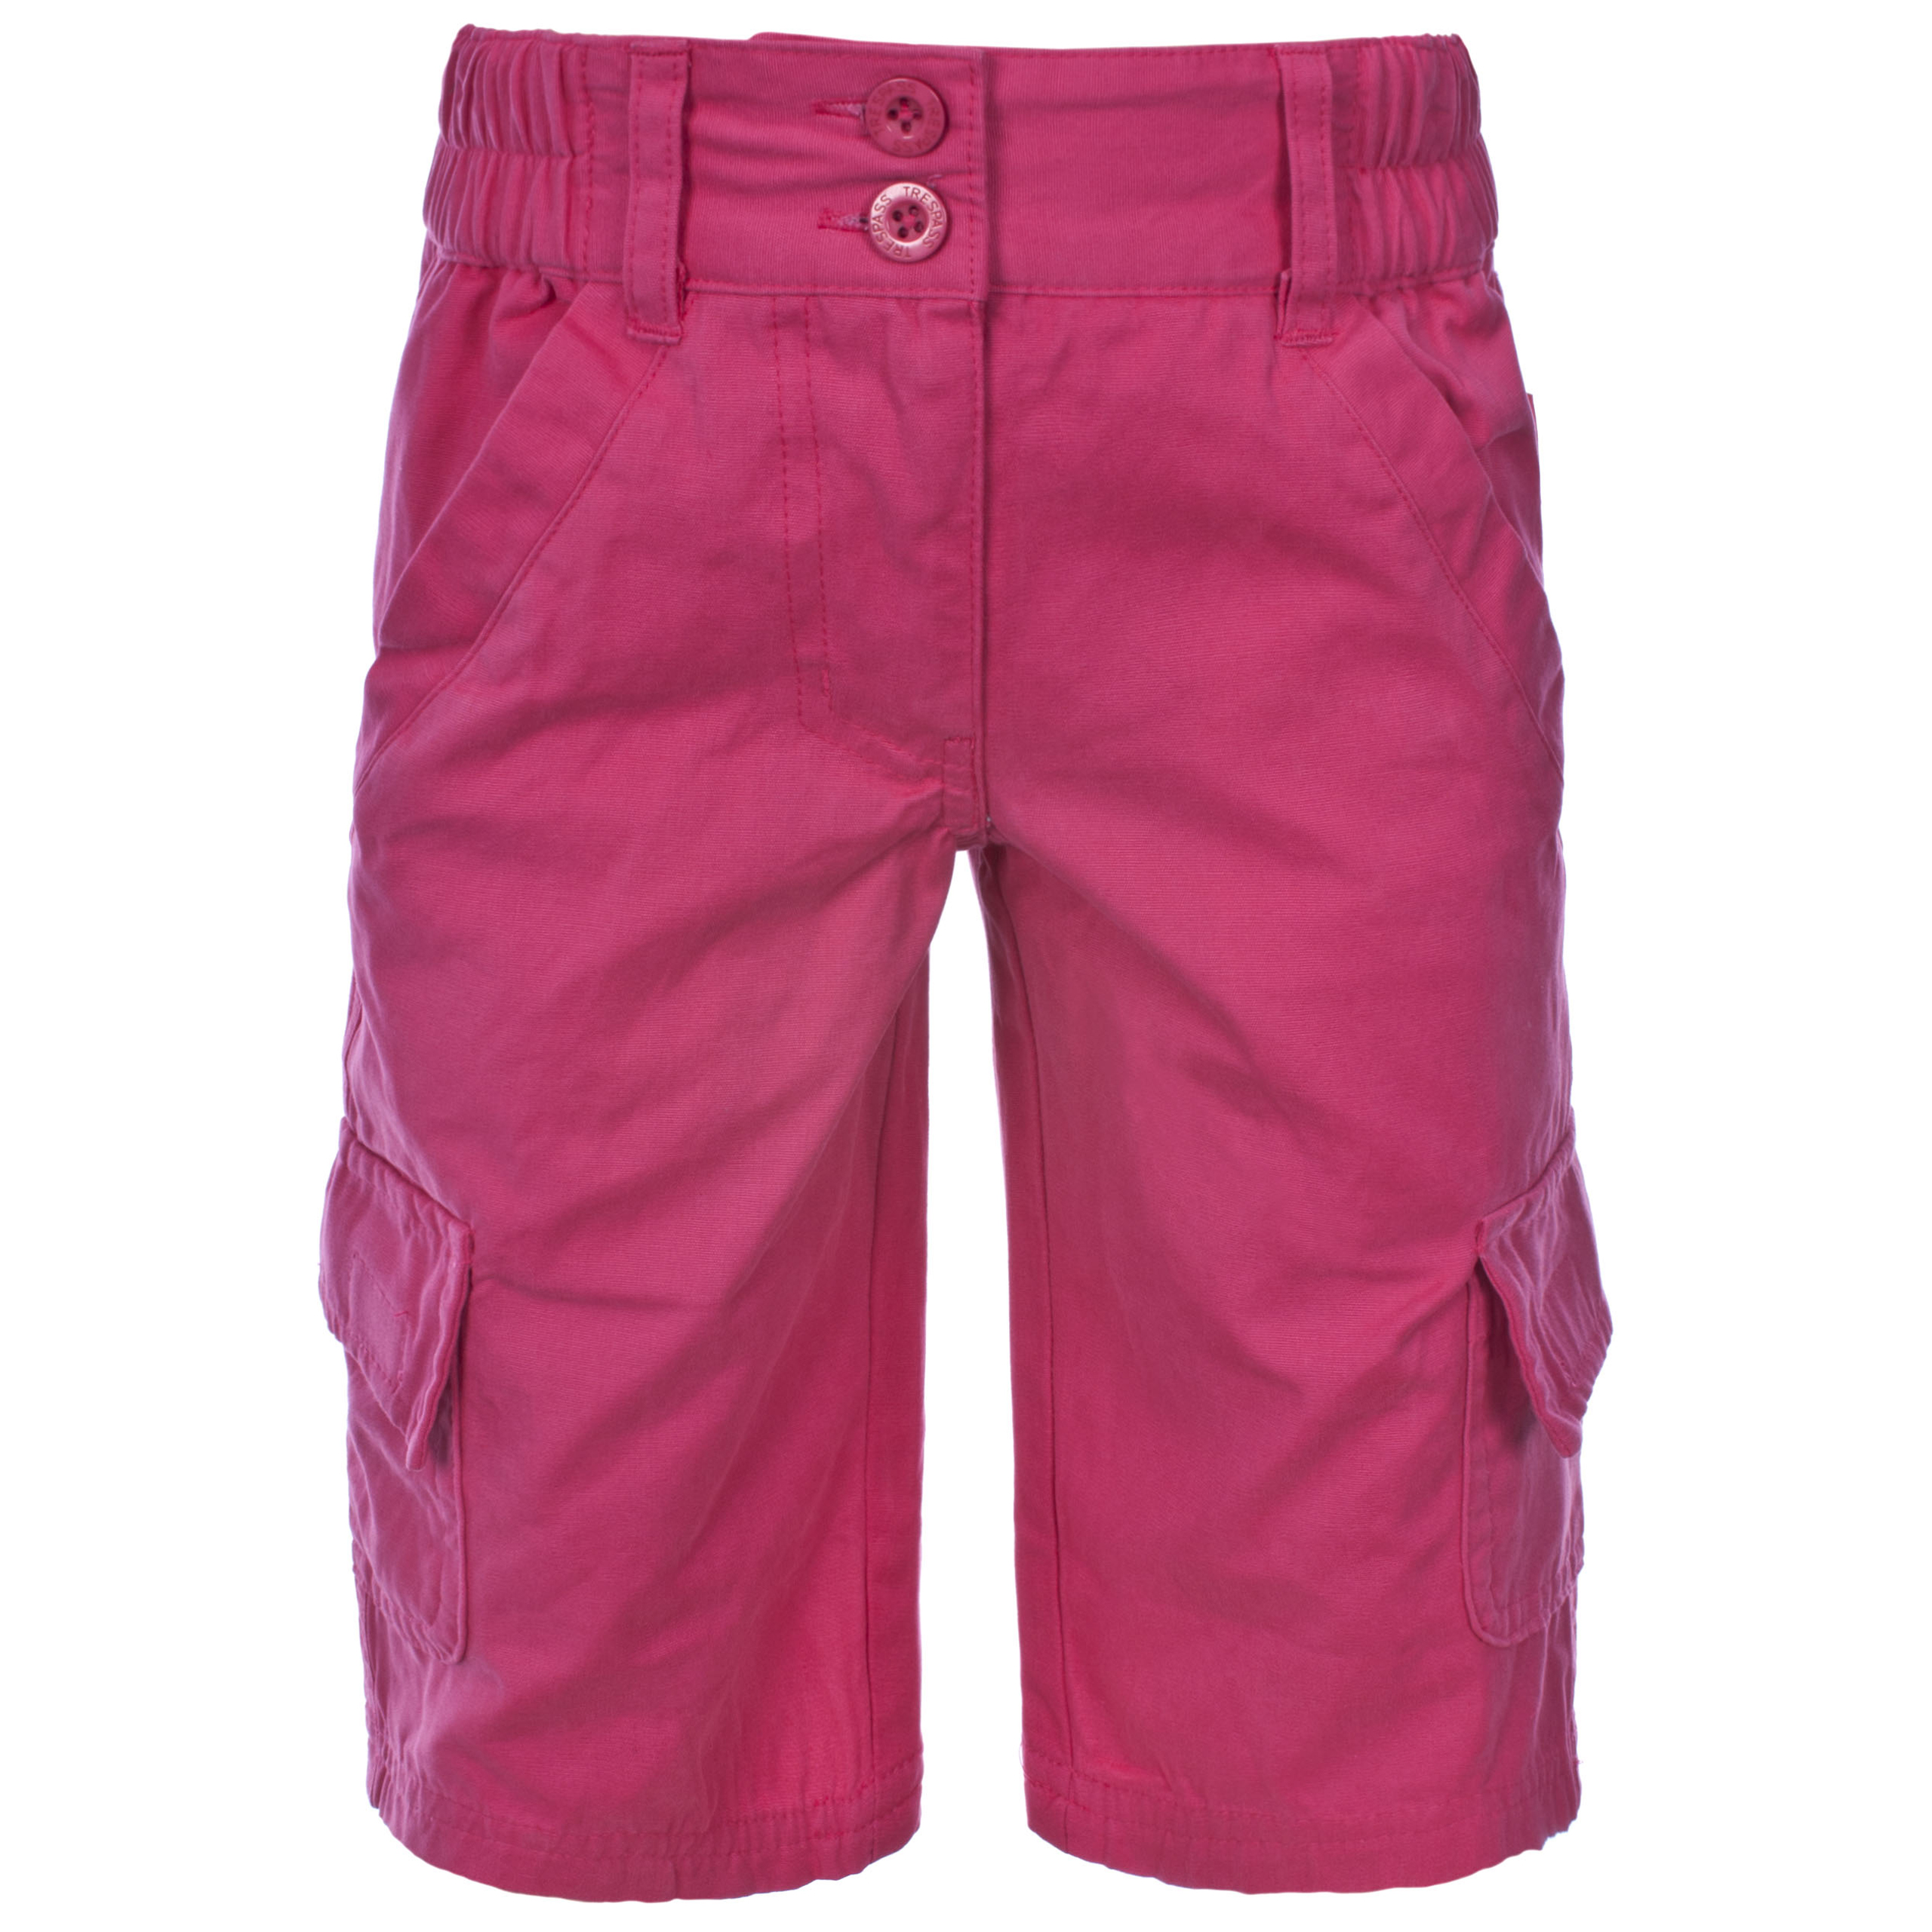 """A comprehensive list of stores and styles of long shorts for girls with sizes and prices. About the Mess; If you're a parent, you don't need me to tell you how random and ridiculous clothing for kids can be. Boys must wear cargo shorts and other loose clothing in """"boy"""" colors. They have two great kinds of long play shorts for."""